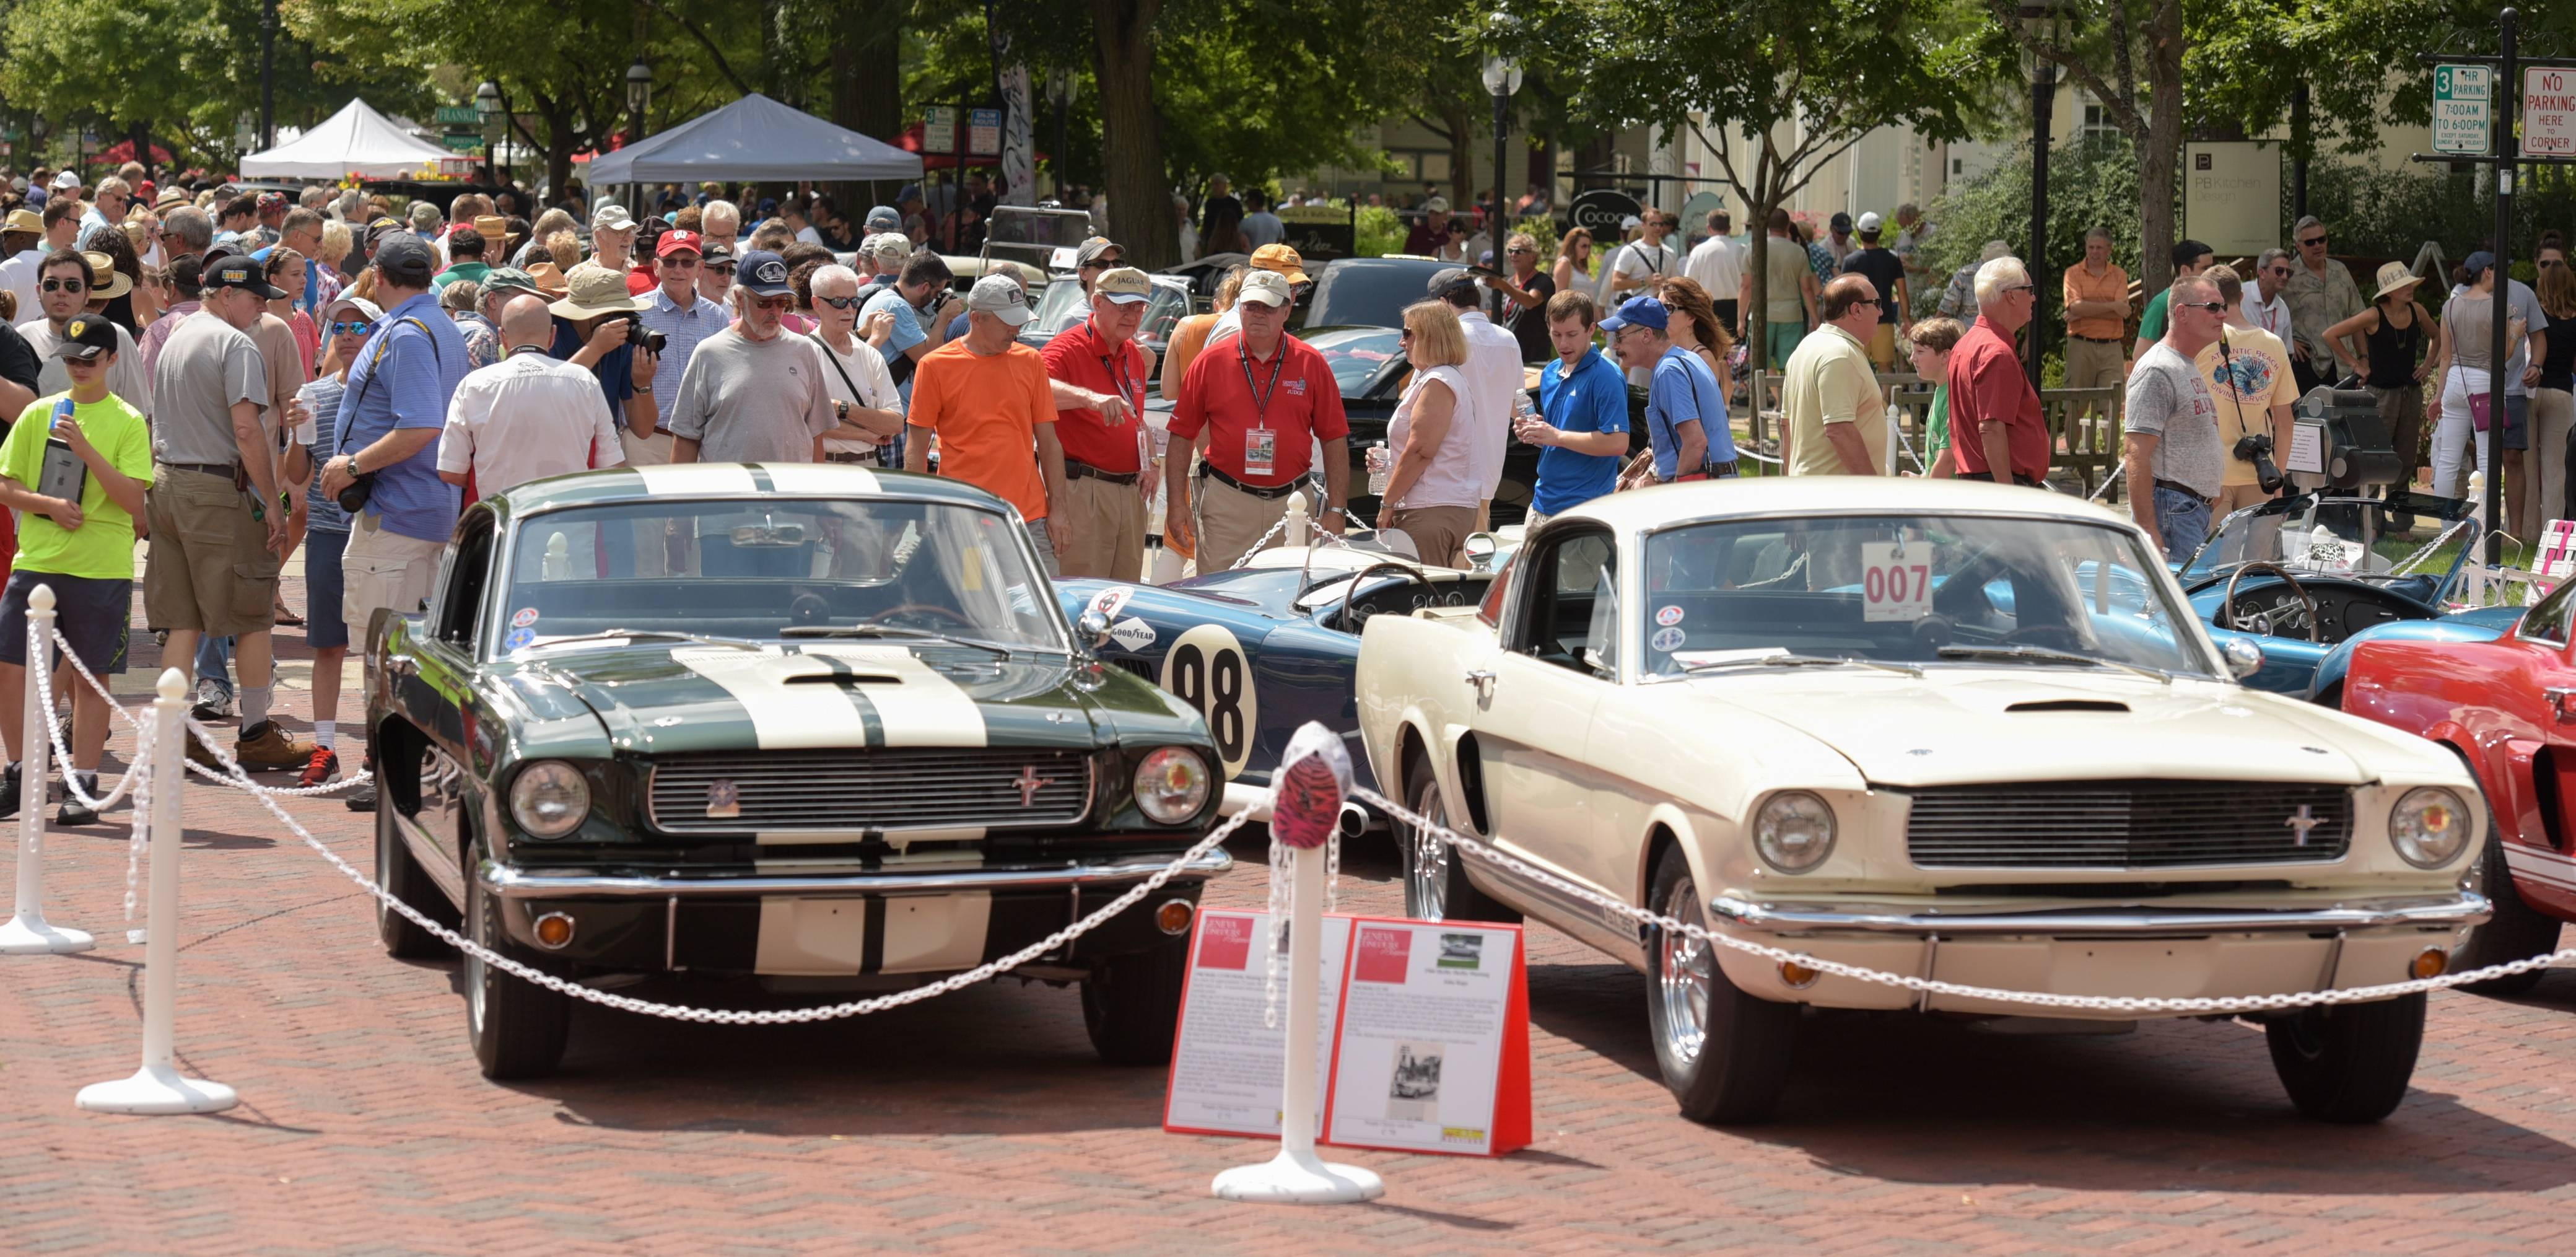 Classic car enthusiasts of all types filled Third Street at last year's Concours d'Elegance car show in downtown Geneva.